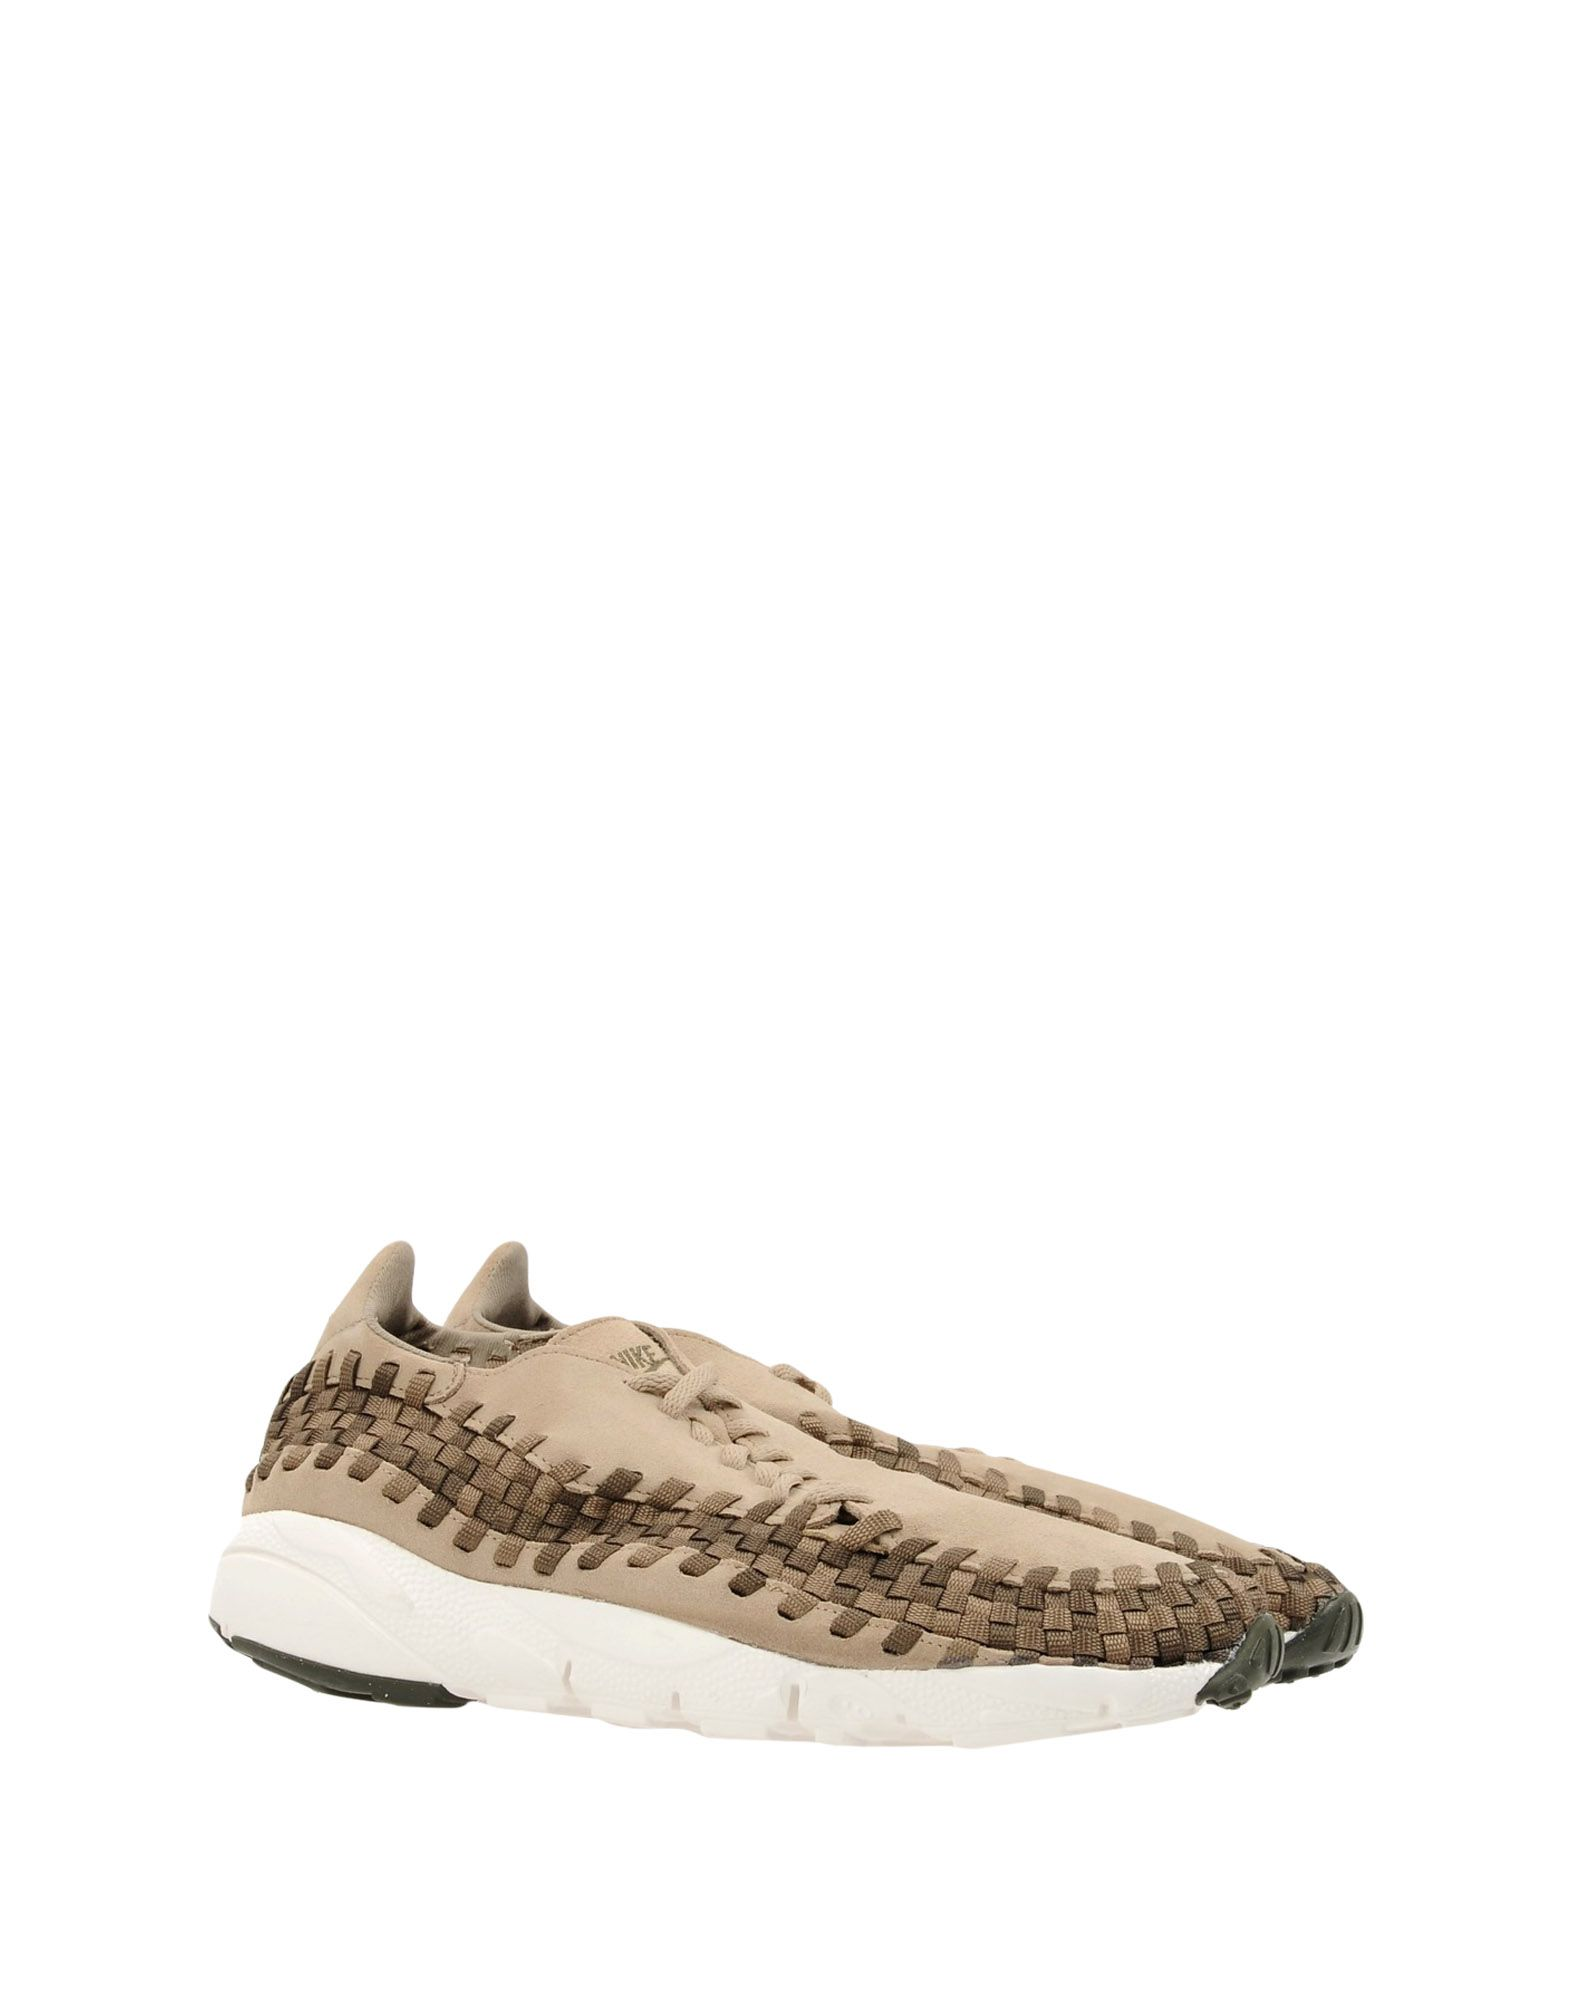 Sneakers Nike  Air Footscape Woven Nm - Uomo - 11303254QC